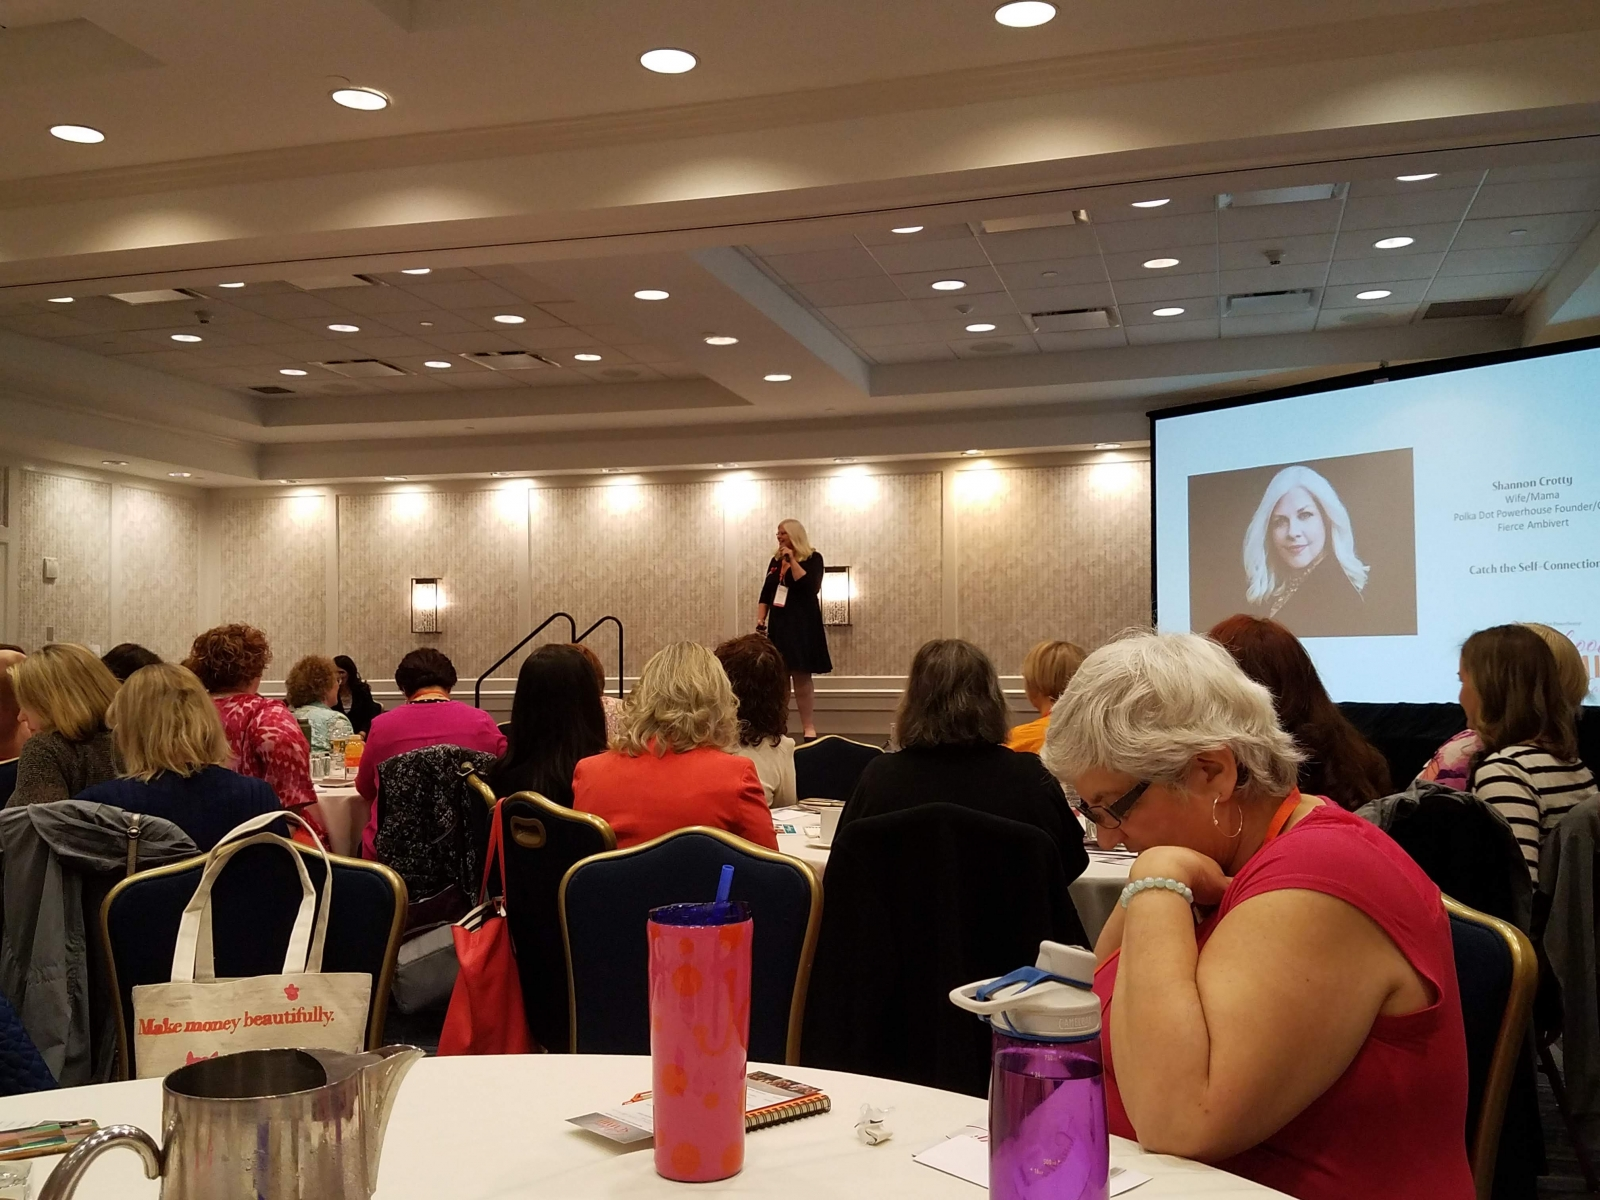 PDP founder, Shannon Crotty welcomes the 2019 Sisterhood Summit attendees